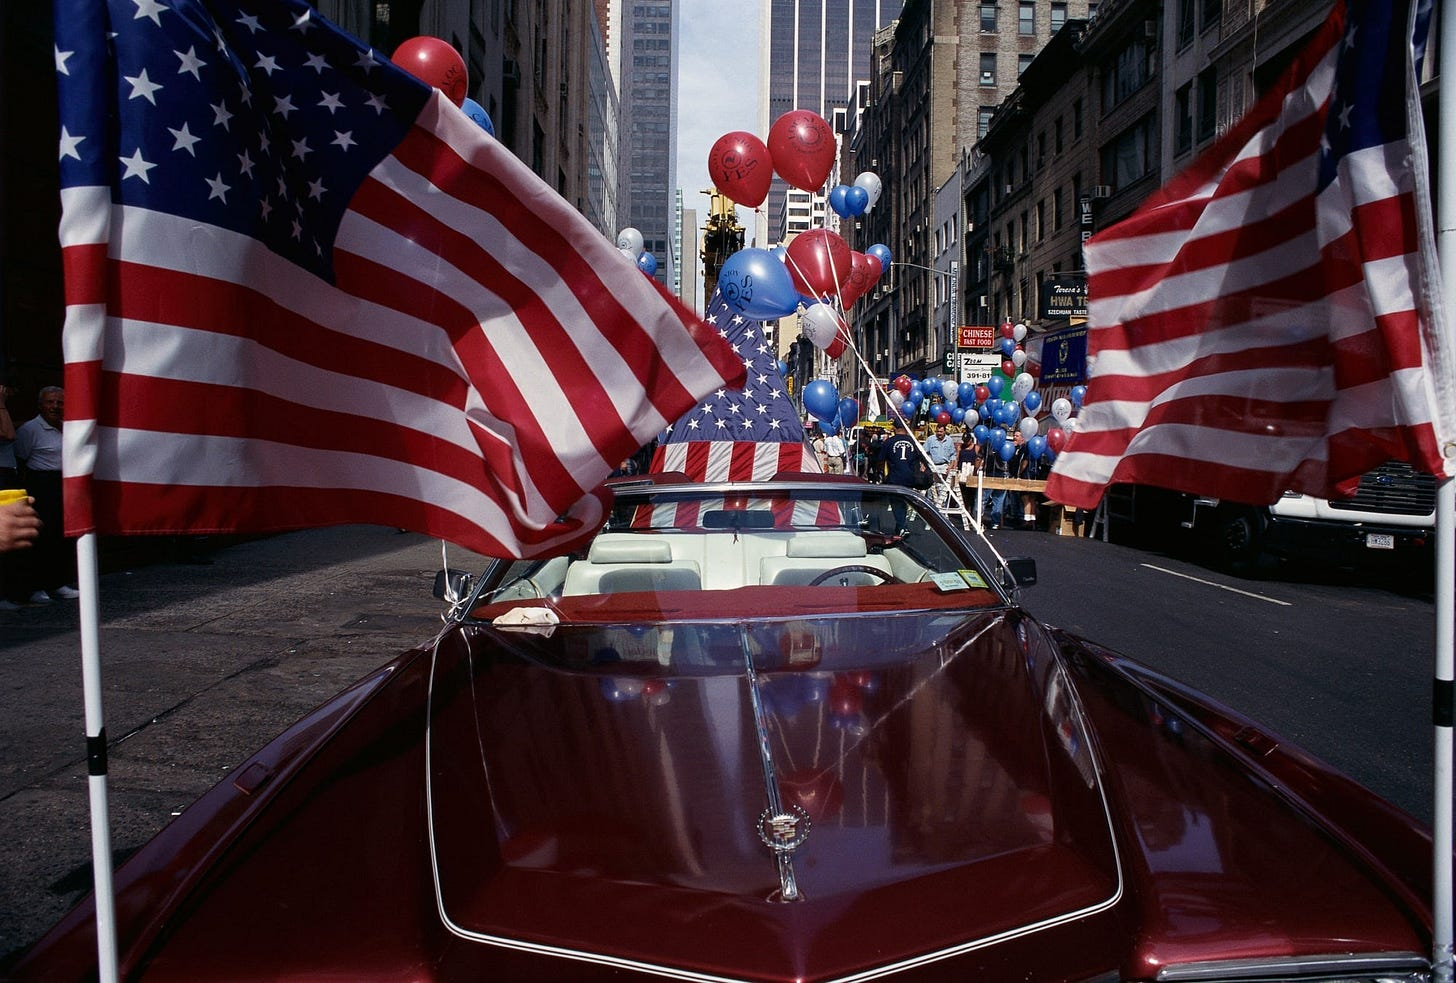 red white and blue balloons and many american flags attached to a red cadillac on the streets of new york city